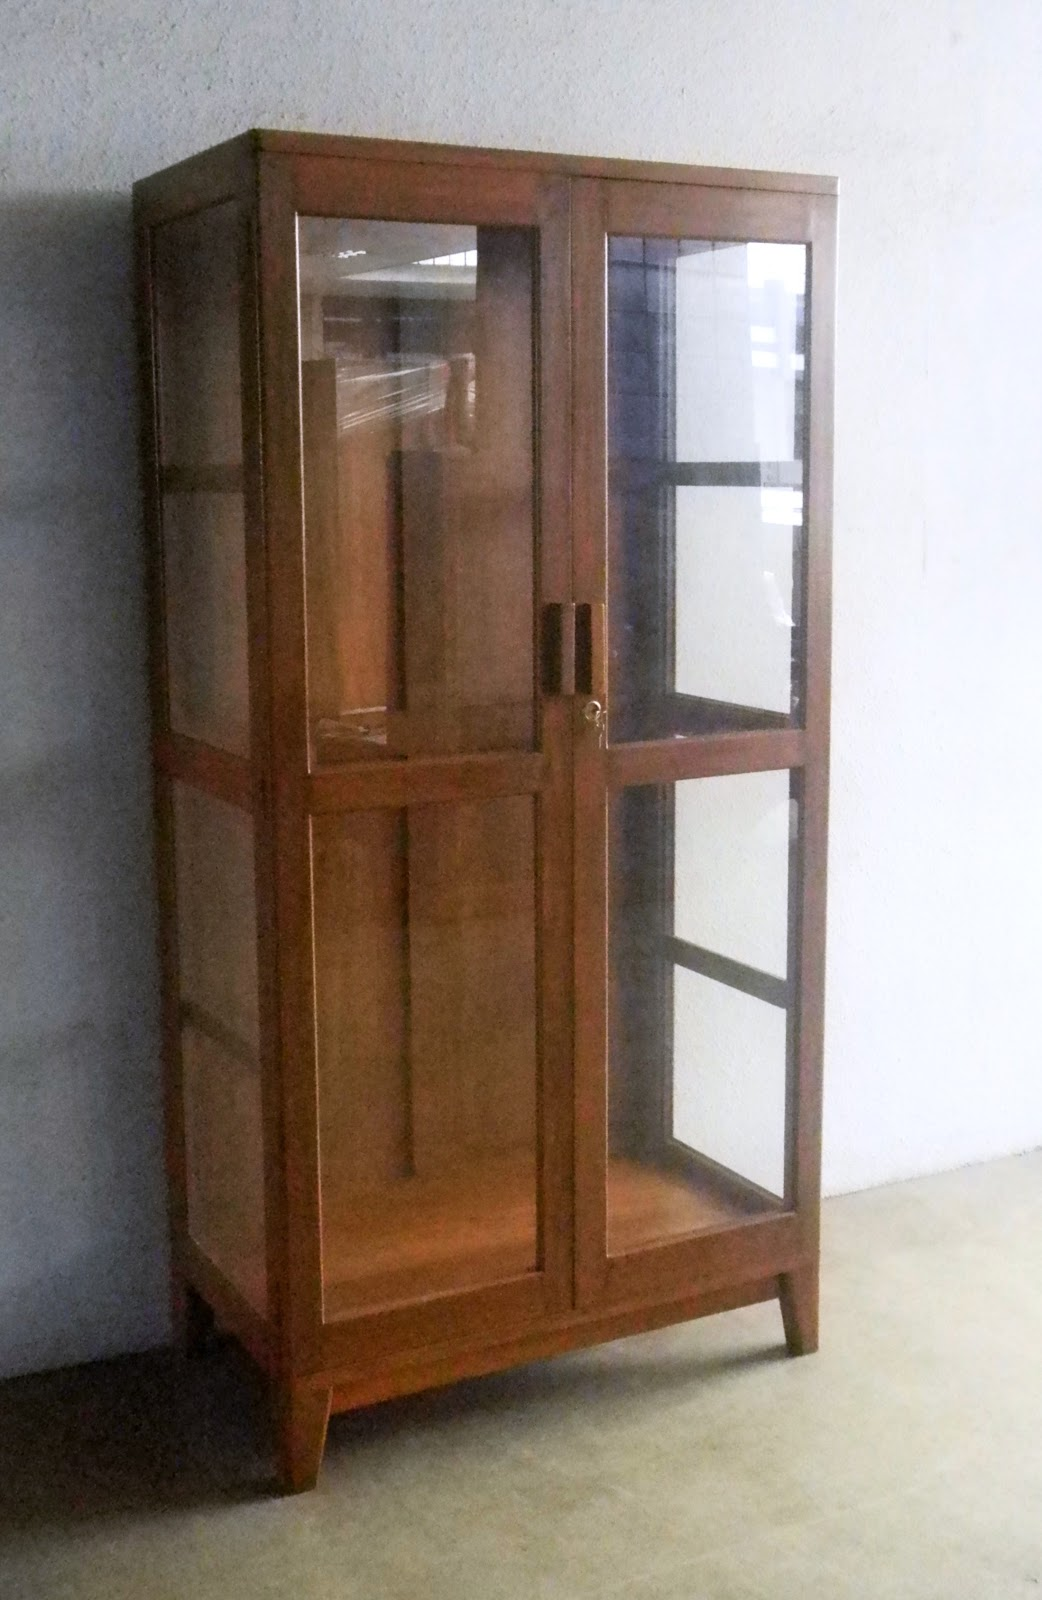 Vintage glass cabinet. Restored. Comes with thick glass shelves. - VINTAGE SHOWCASES AND DISPLAY CABINETS Bobs Furniture